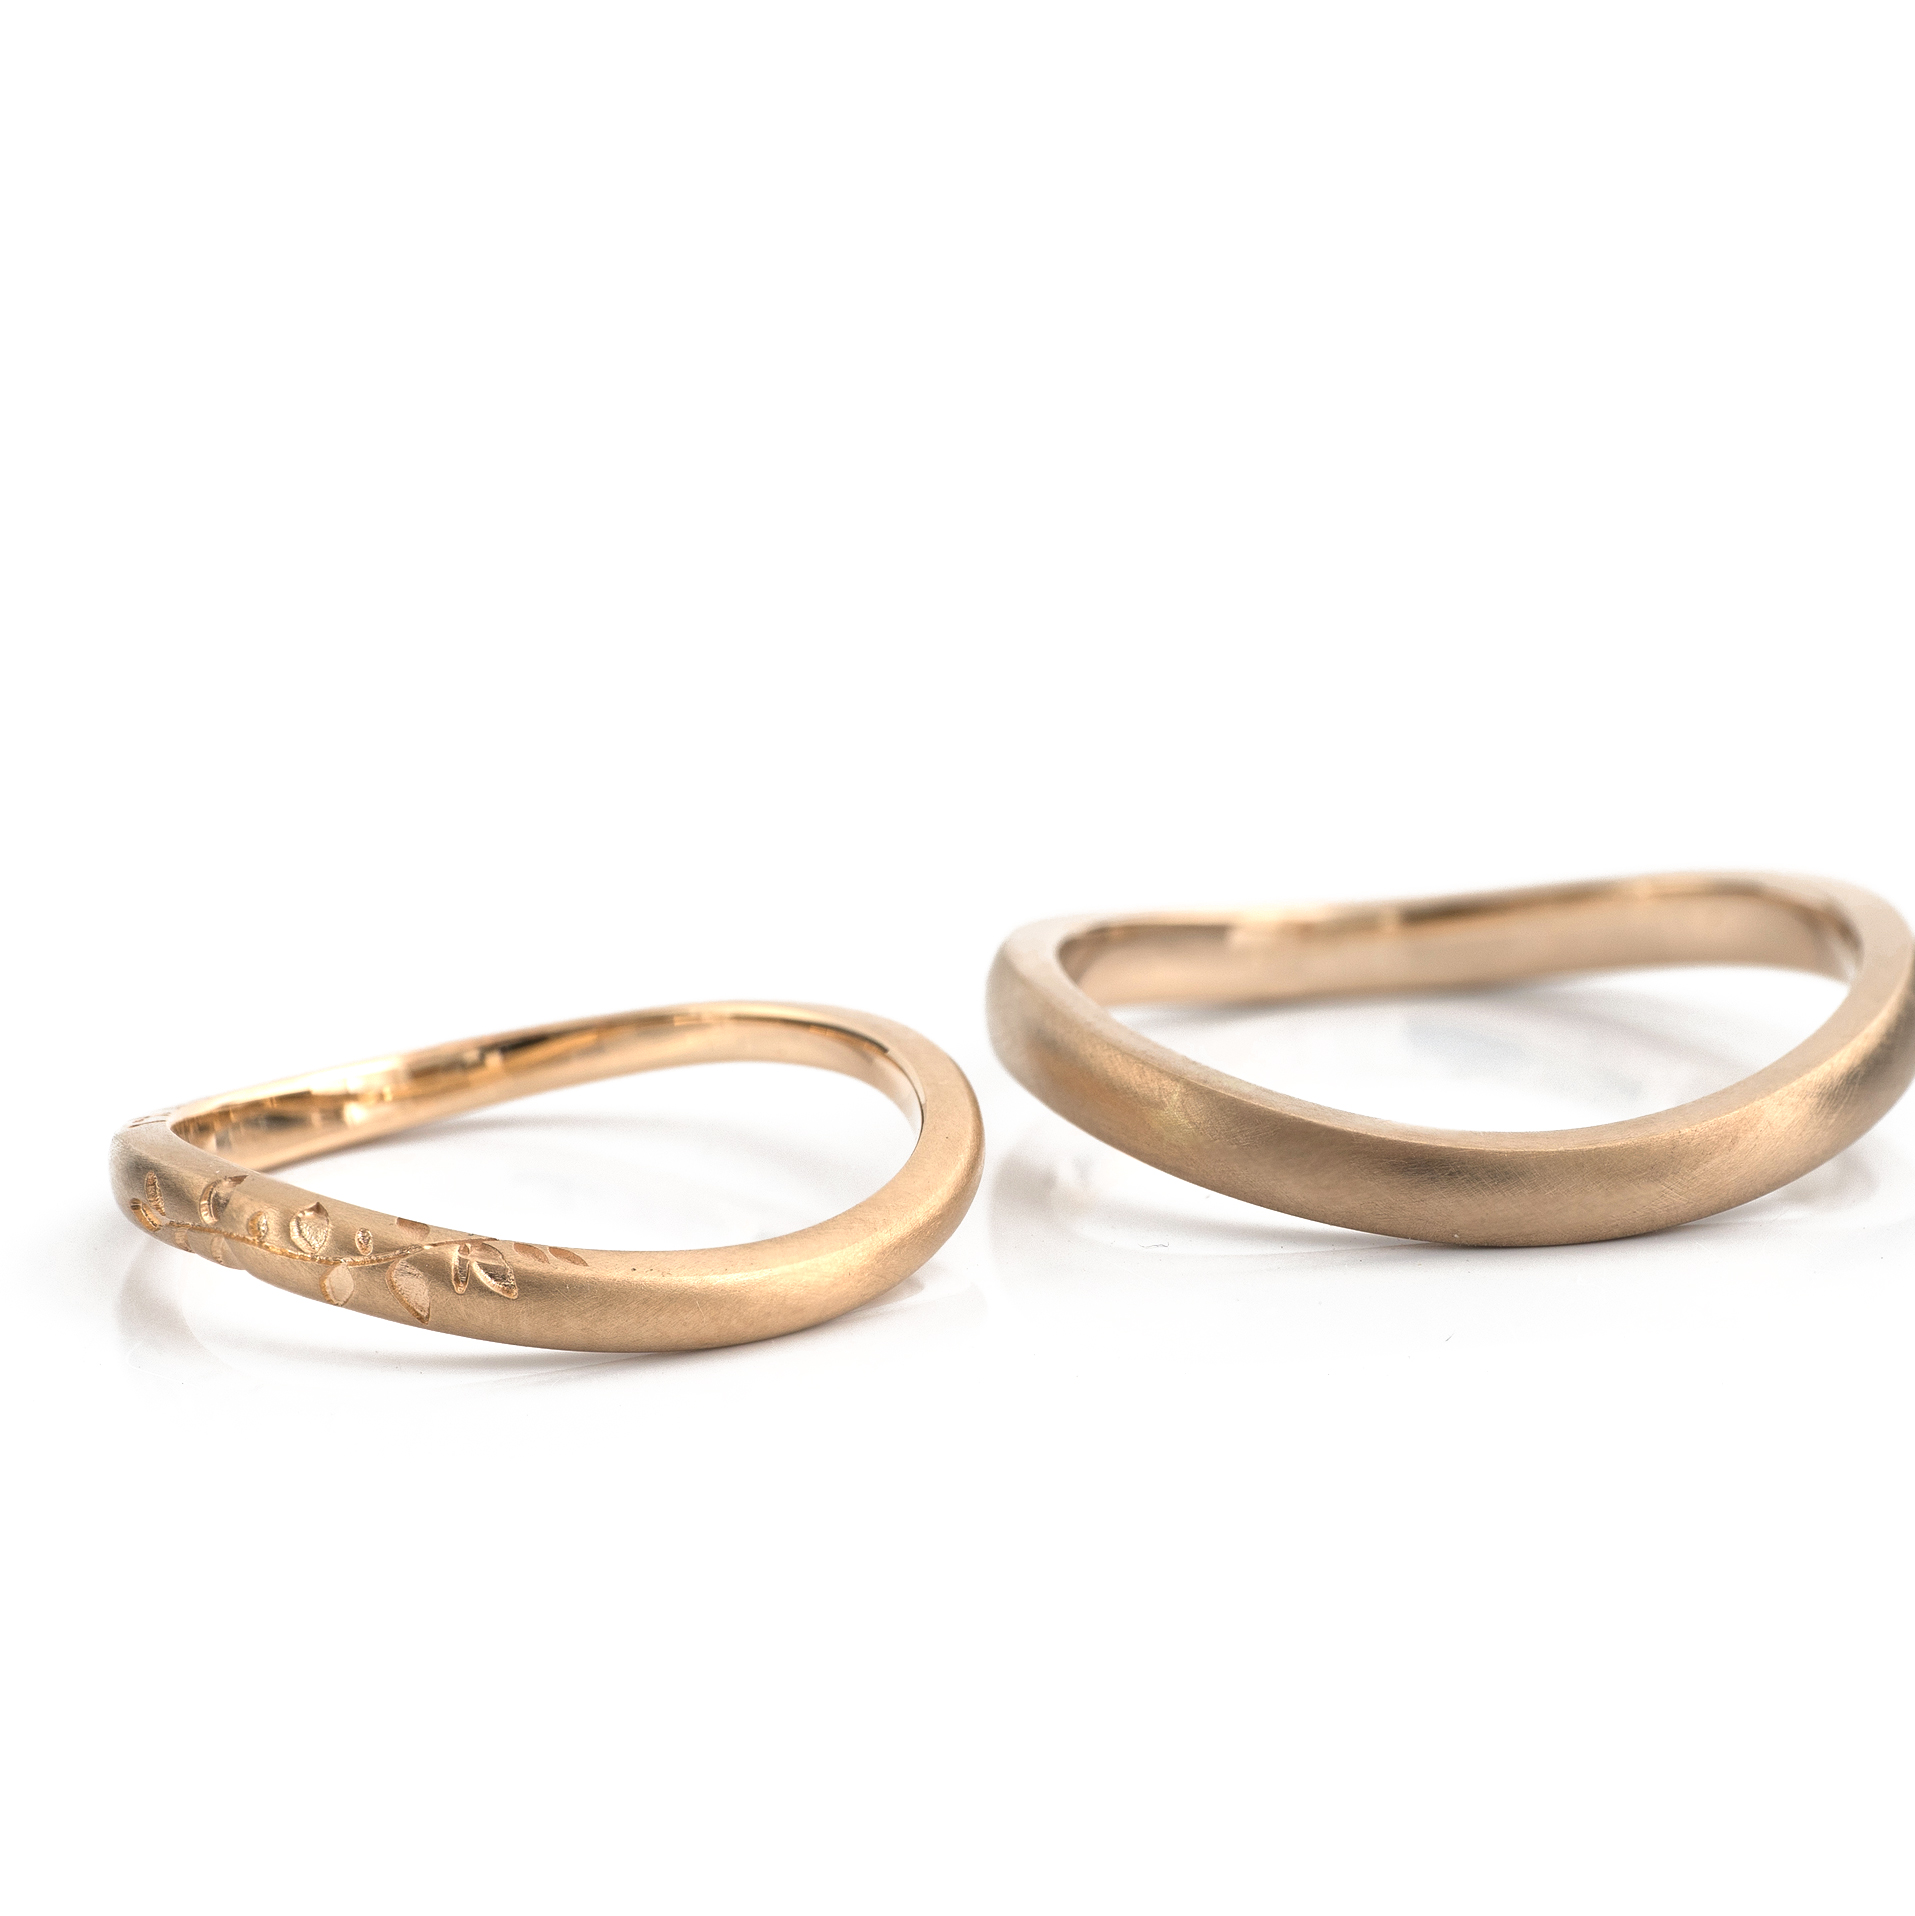 "yellow gold and champagne gold ""wave ring"" with one-of-a-kind botanical pattern"